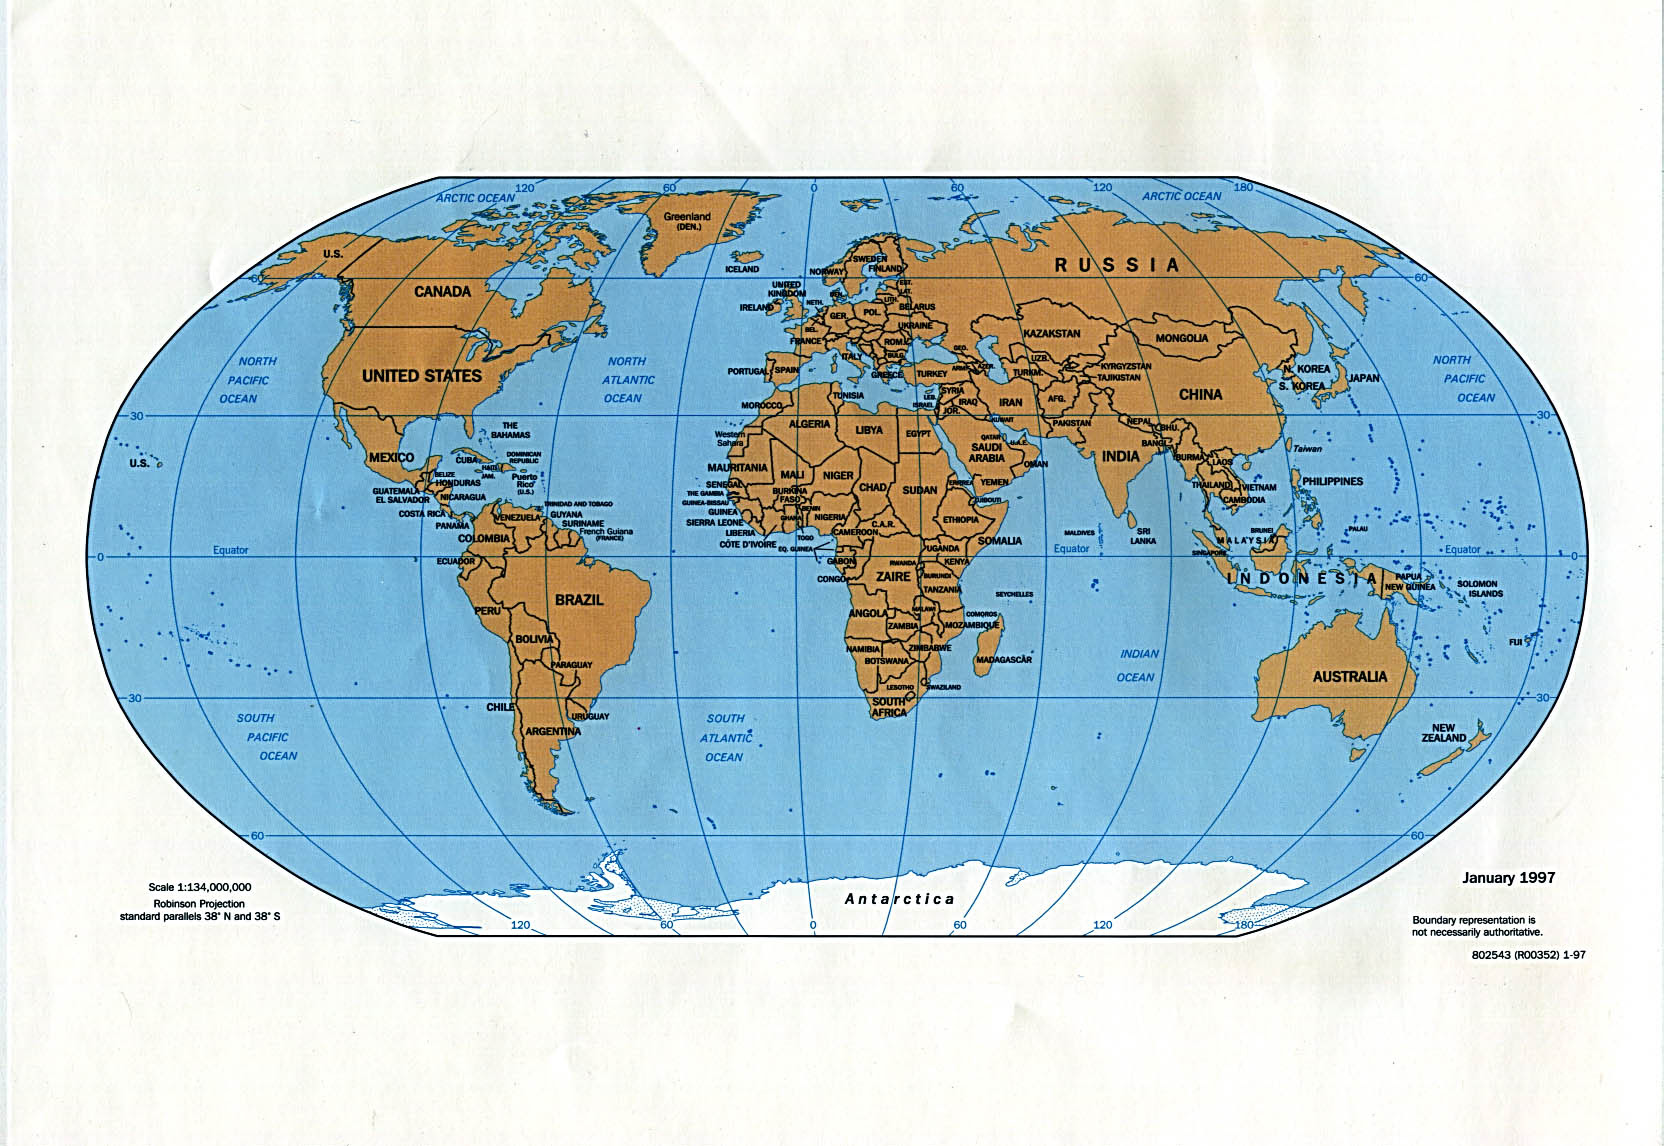 Images of world map mages world maps perry casta eda map collection ut library online gumiabroncs Images